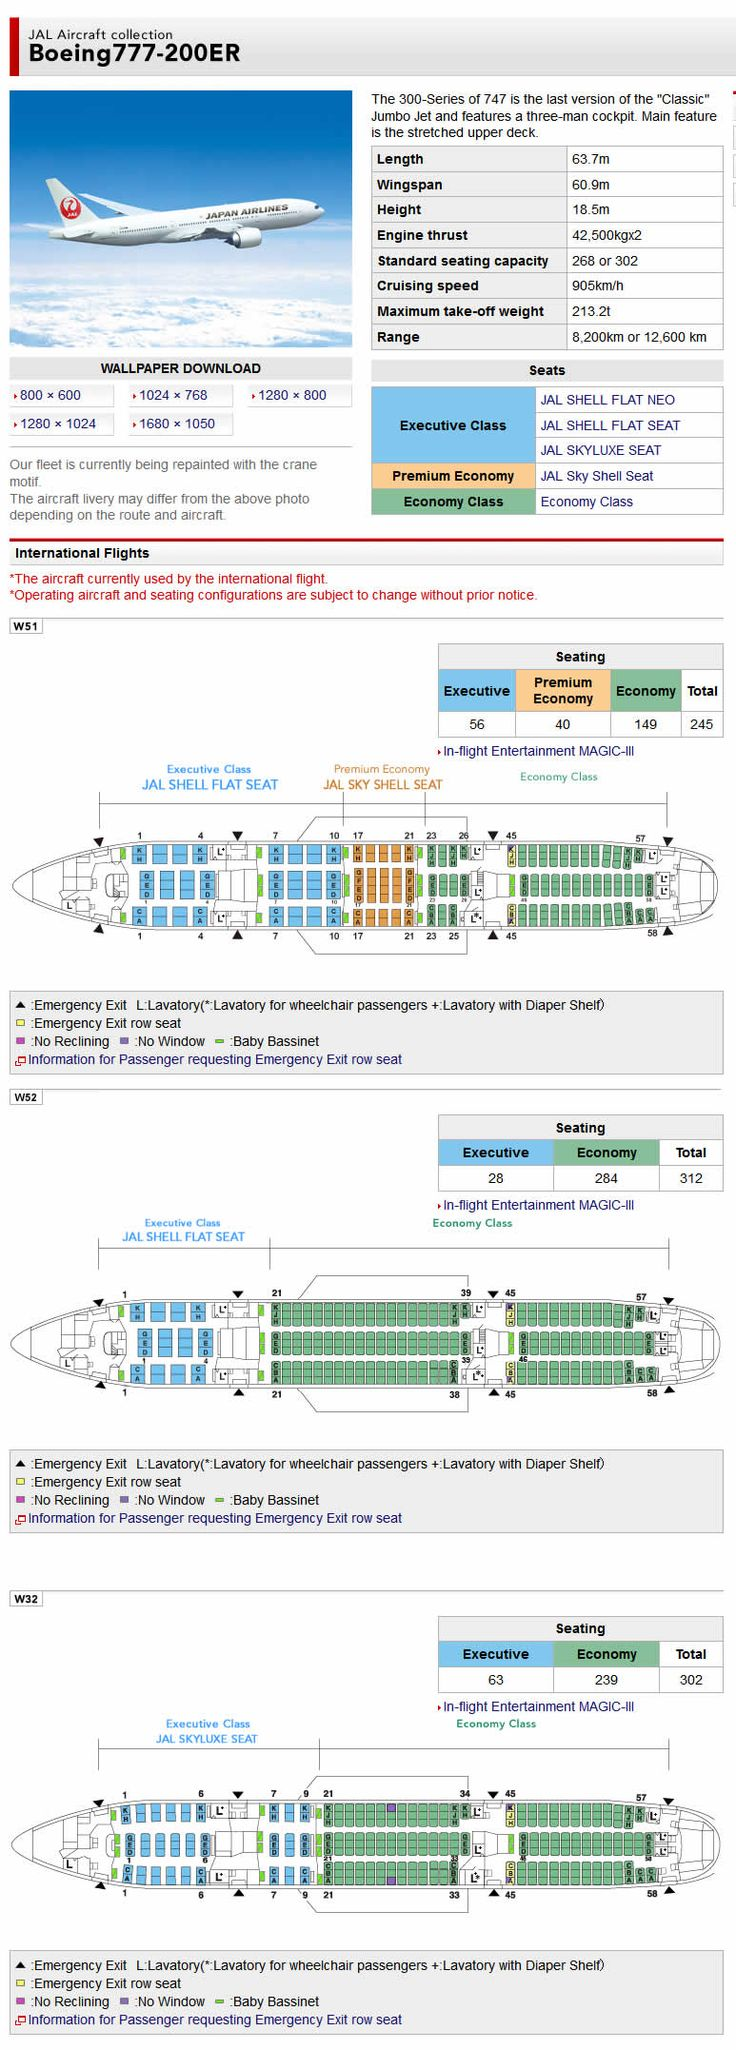 JAL JAPAN AIR AIRLINES BOEING 777-200ER AIRCRAFT SEATING CHART